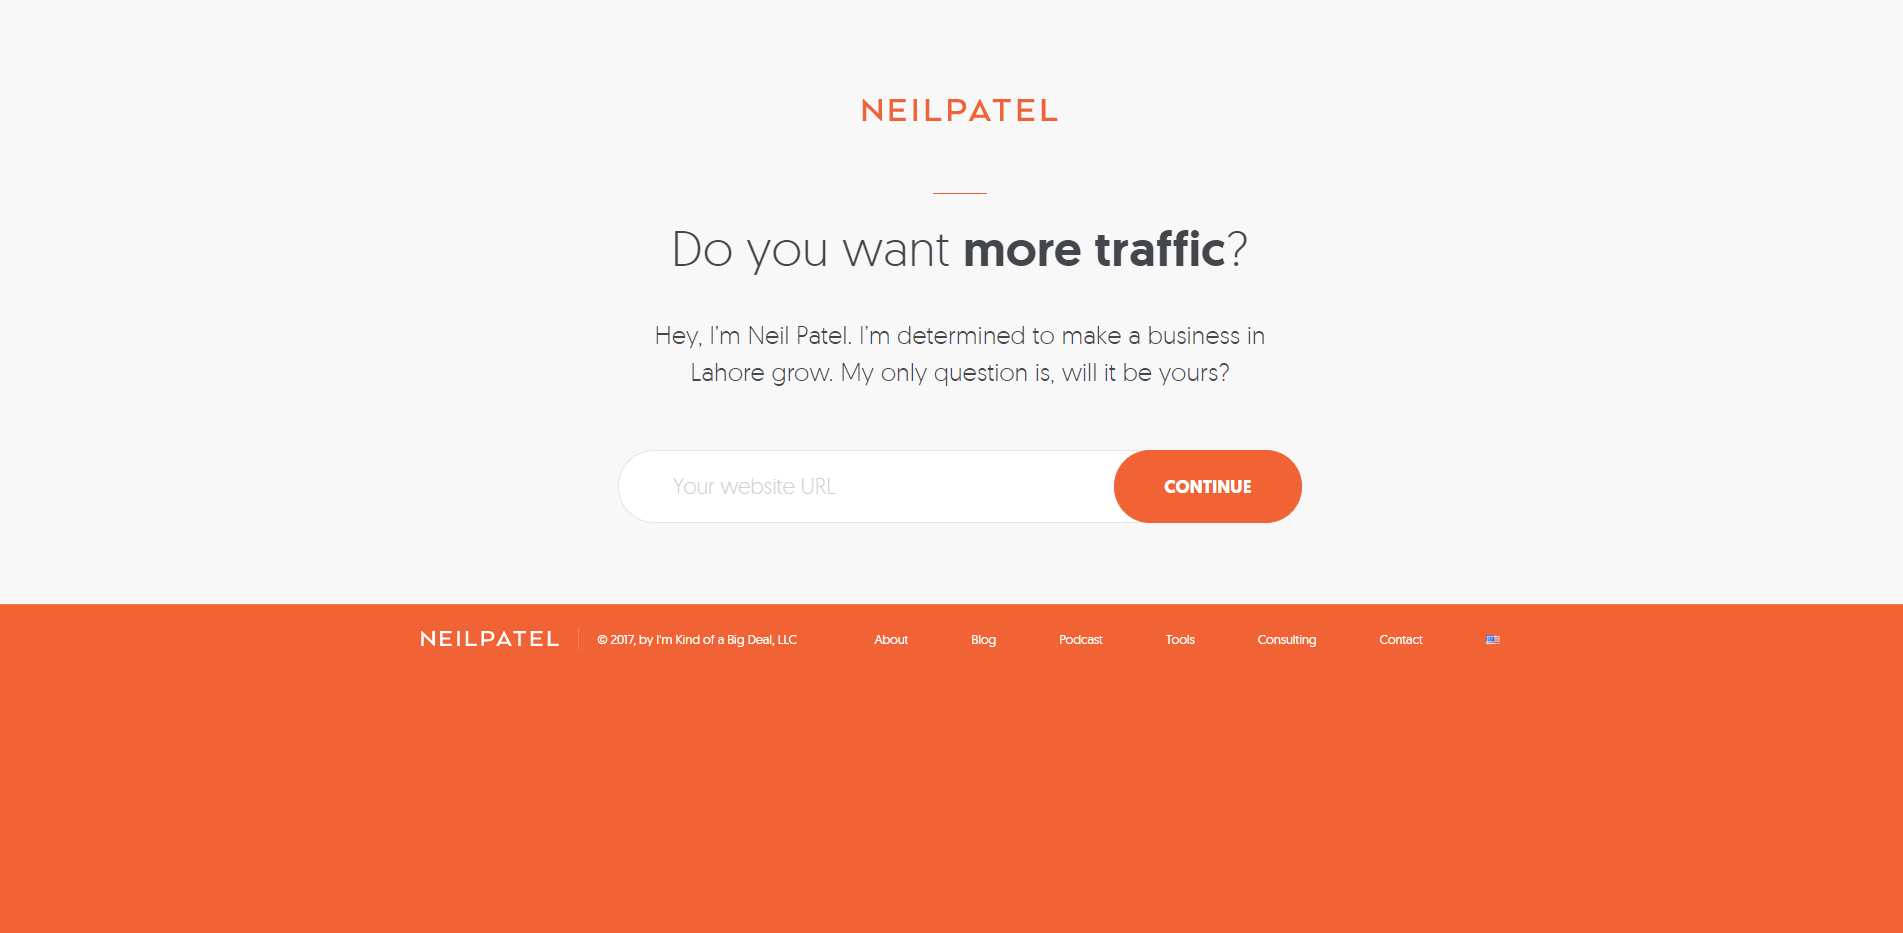 Neil Patel Click Through Landing Page step 1